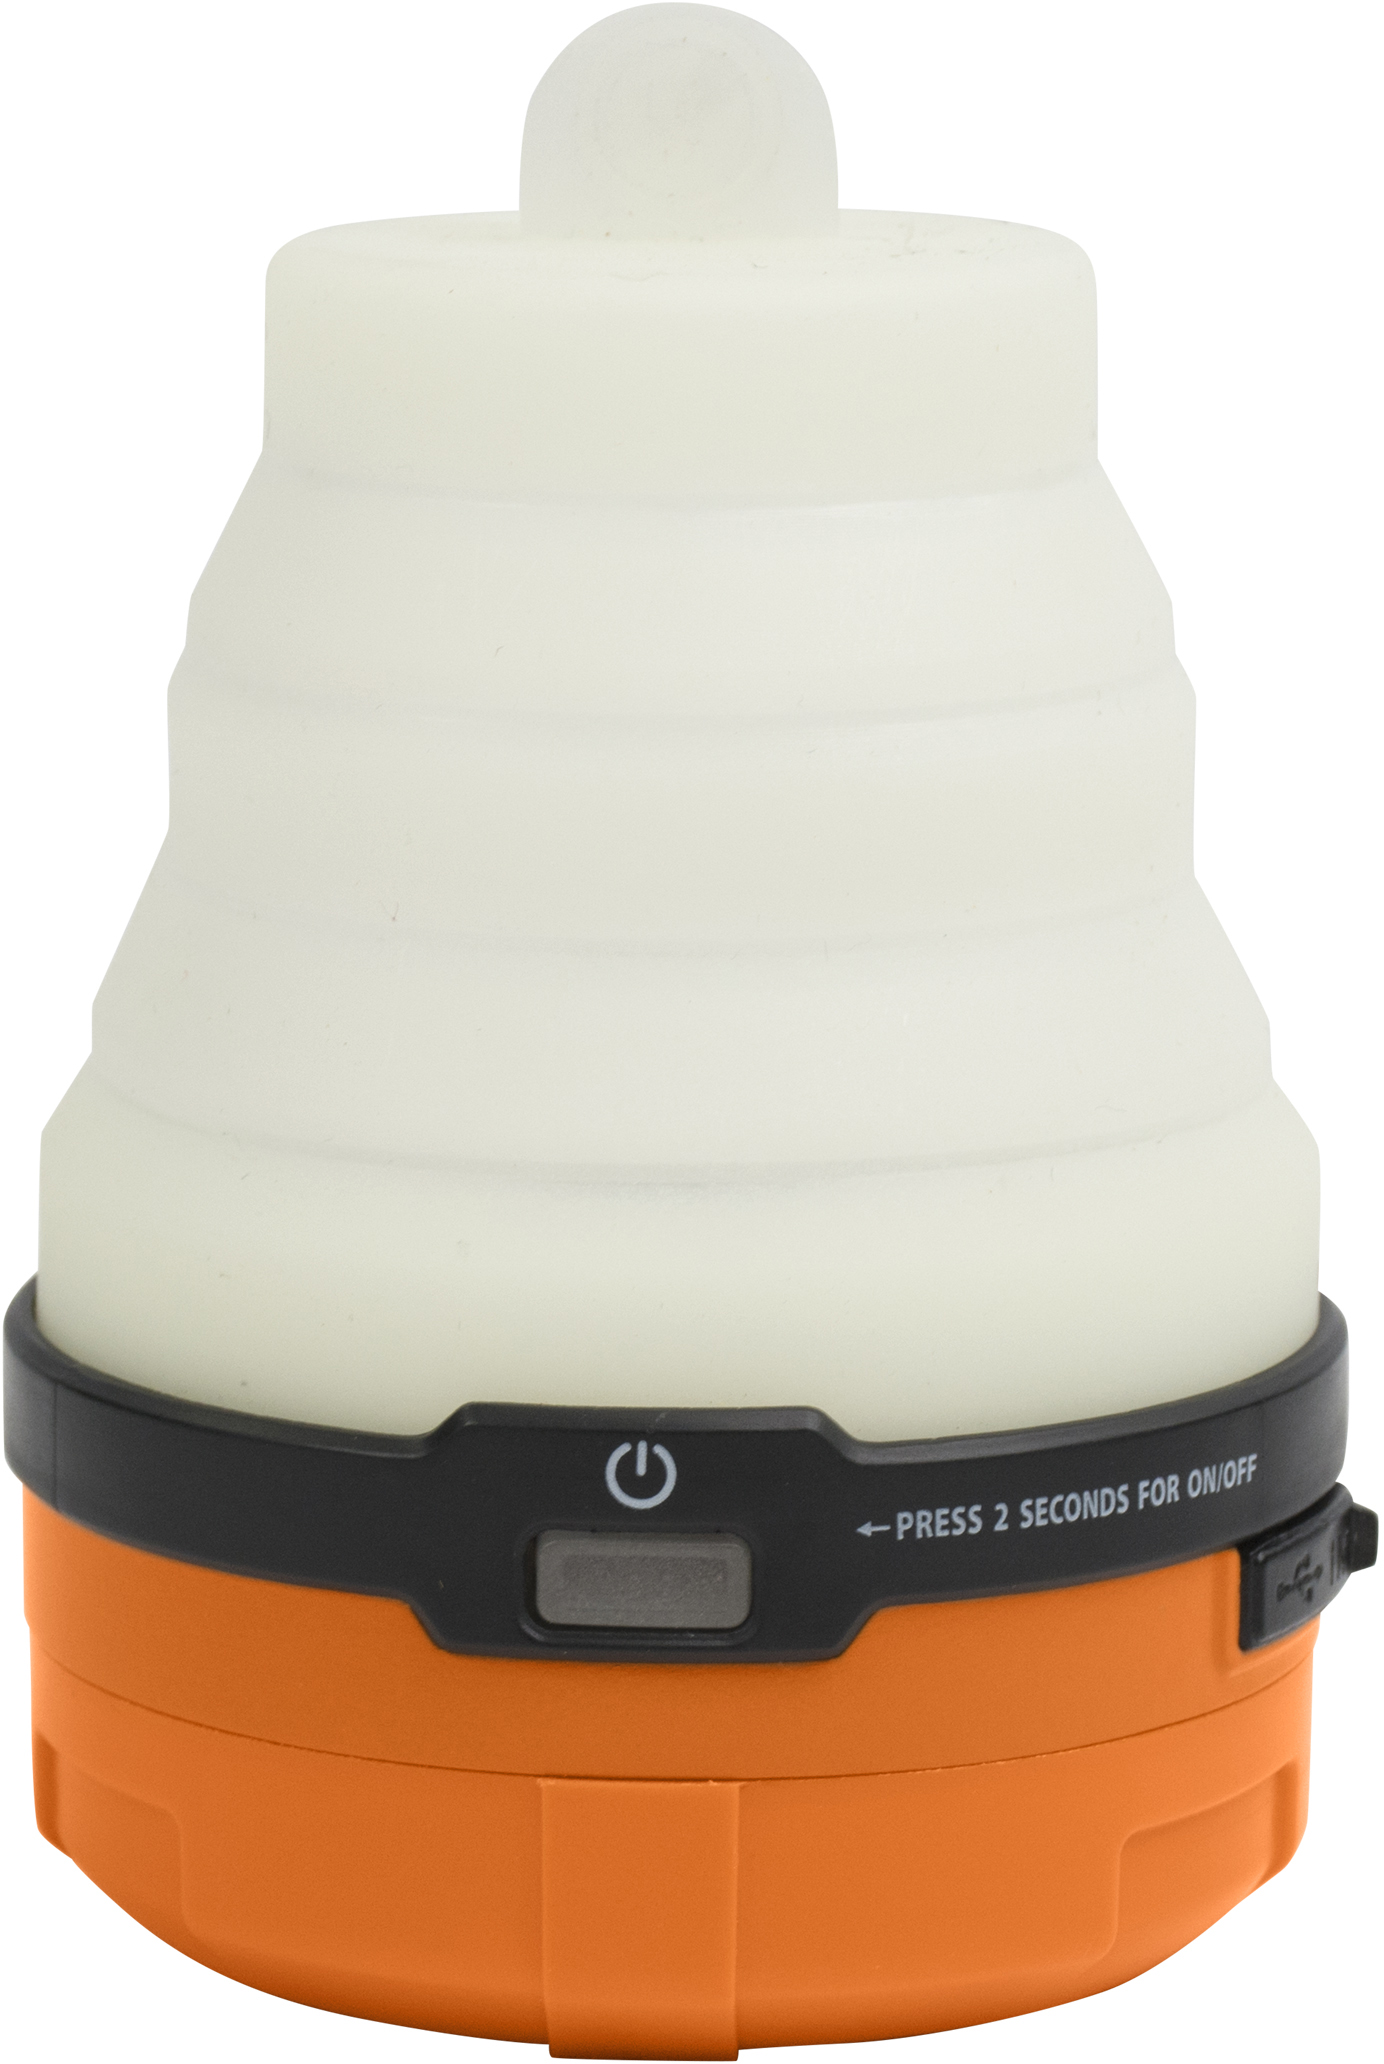 UST Ultimate Survival Spright Recharge Collapsible LED Lantern with Power Bank, 100 Max Lumens